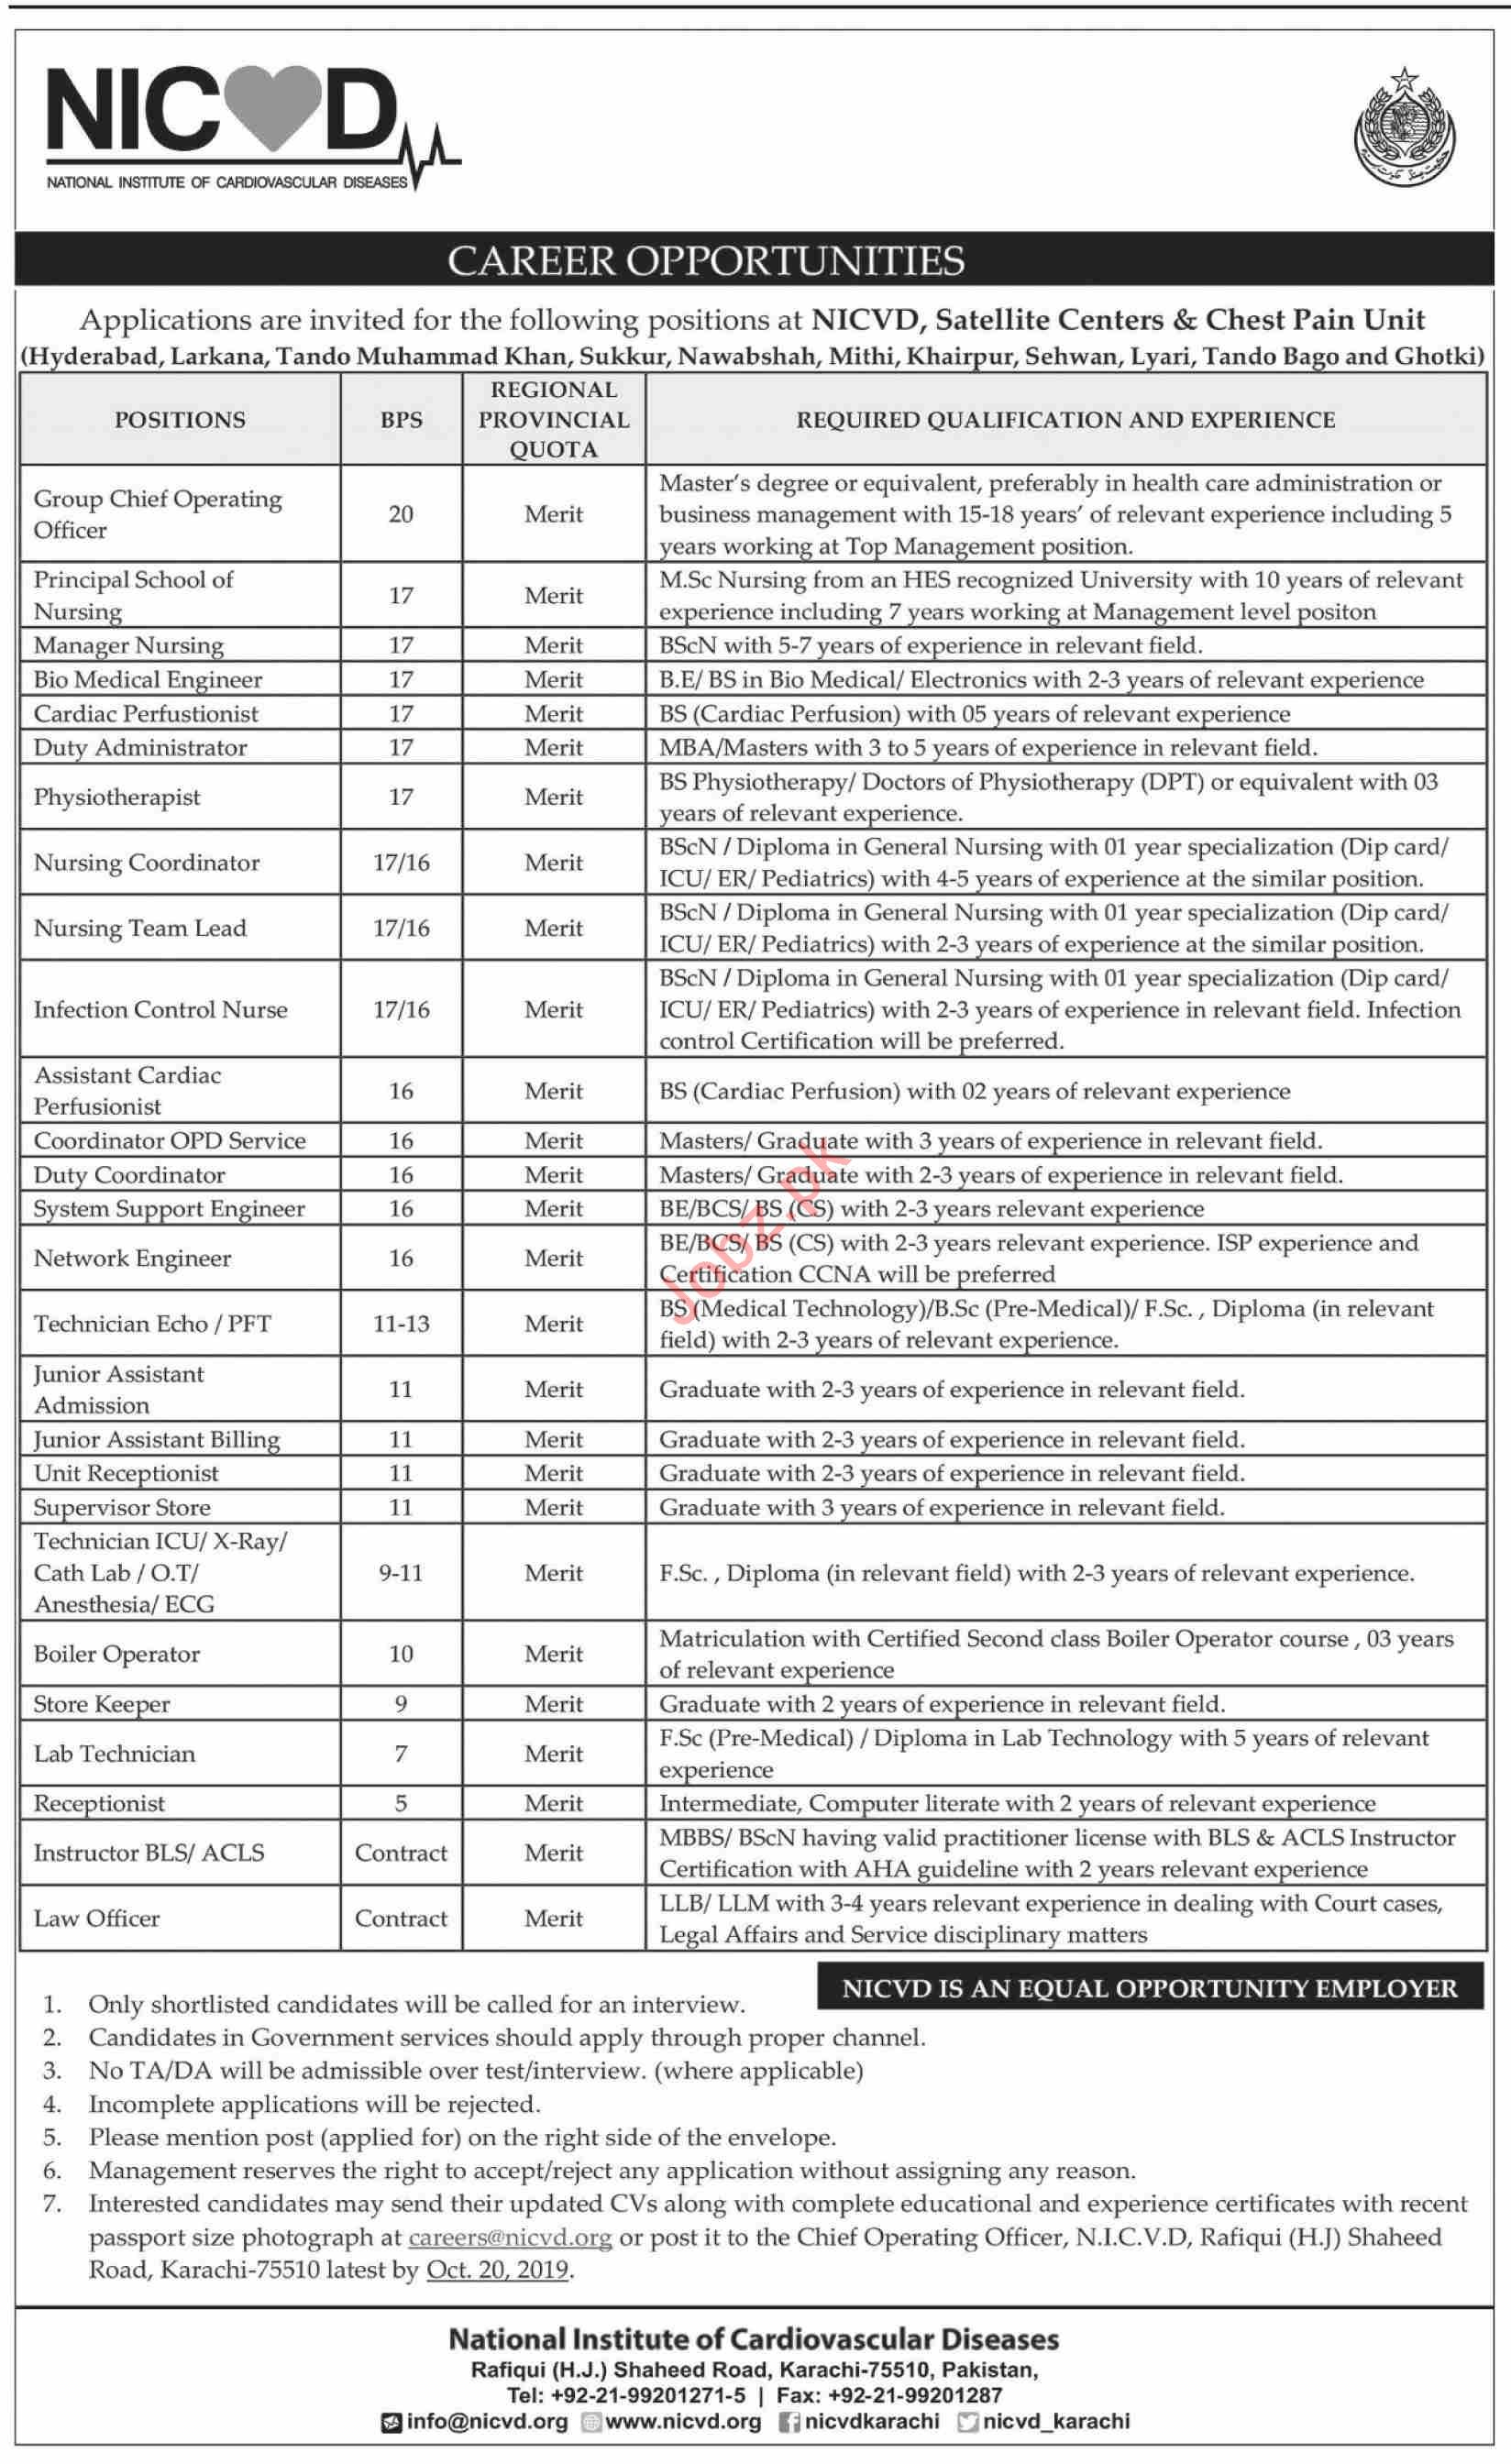 NICVD Satellite Centers & Chest Pain Unit Jobs 2019